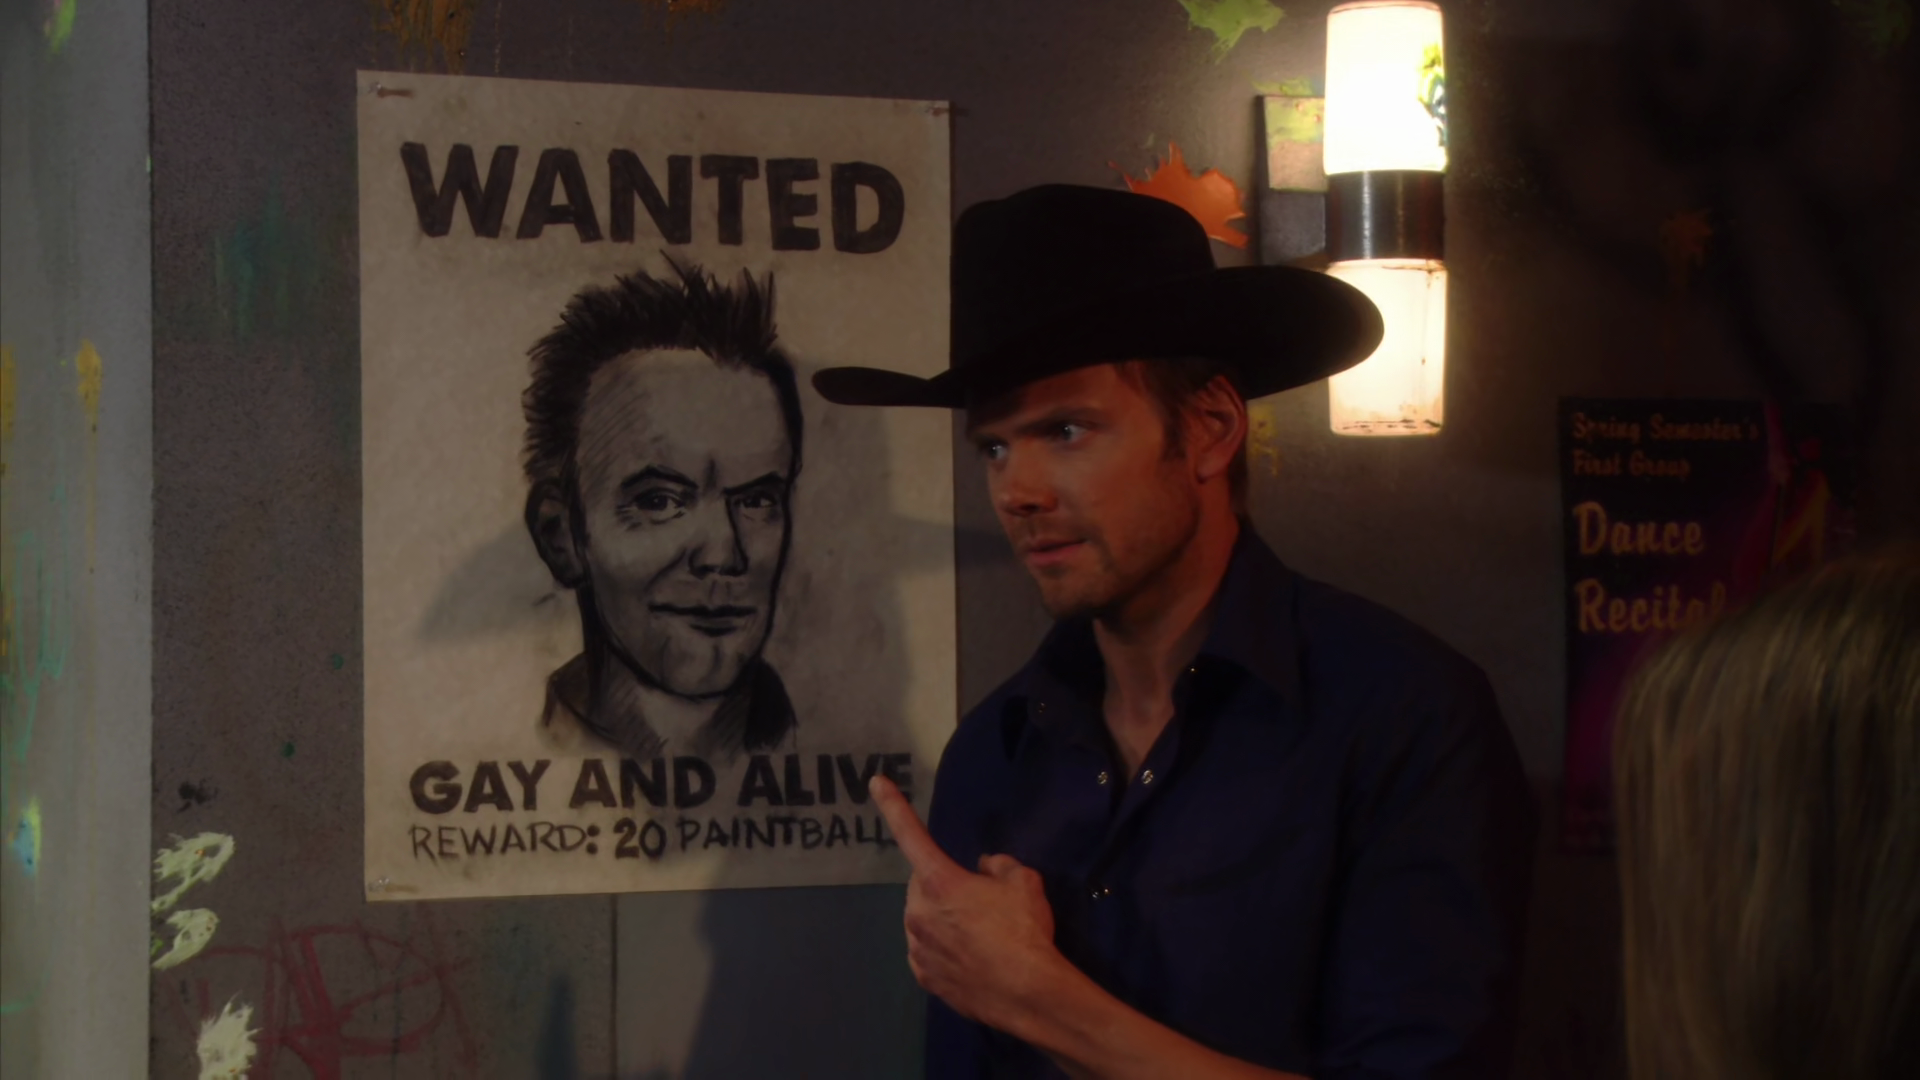 File:Jeff's wanted poster.png